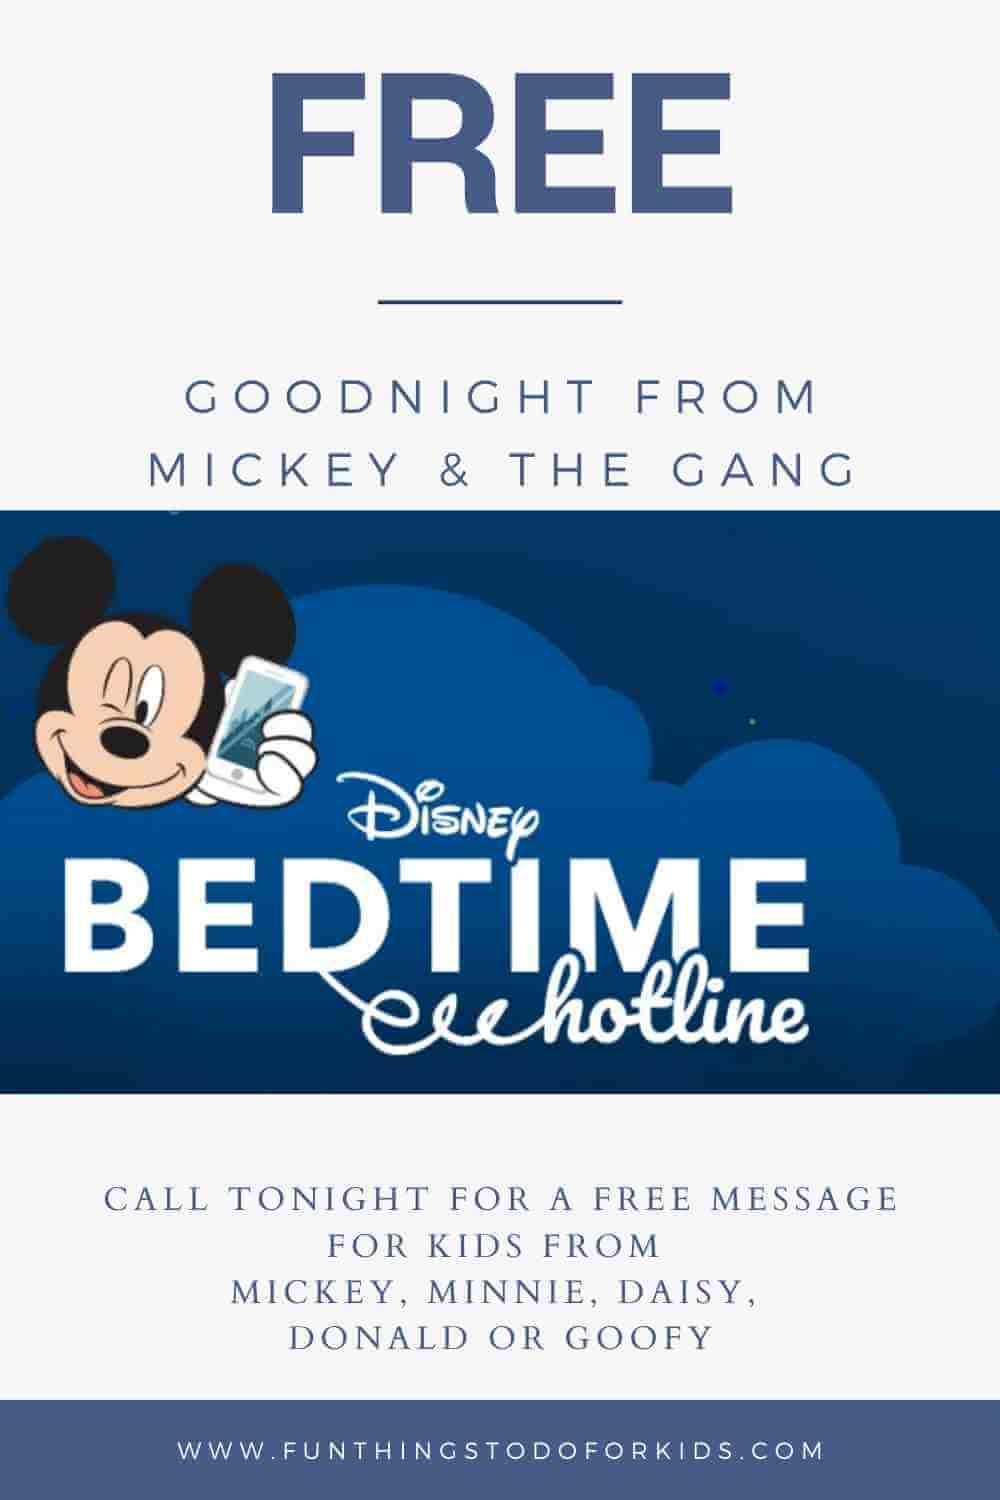 FREE! Call tonight for a free goodnight bedtime message from Mickey Mouse, Minnie Mouse, Goofy, Donald Duck or Daily Duck! Free from Disney! #goodnightmessage #disney #mickeymouse #minniemouse #minnie #goofy #free #toddlers #toddler #toddlermom #toddlersleep #Mickeymouseclub #freestuff #sleep